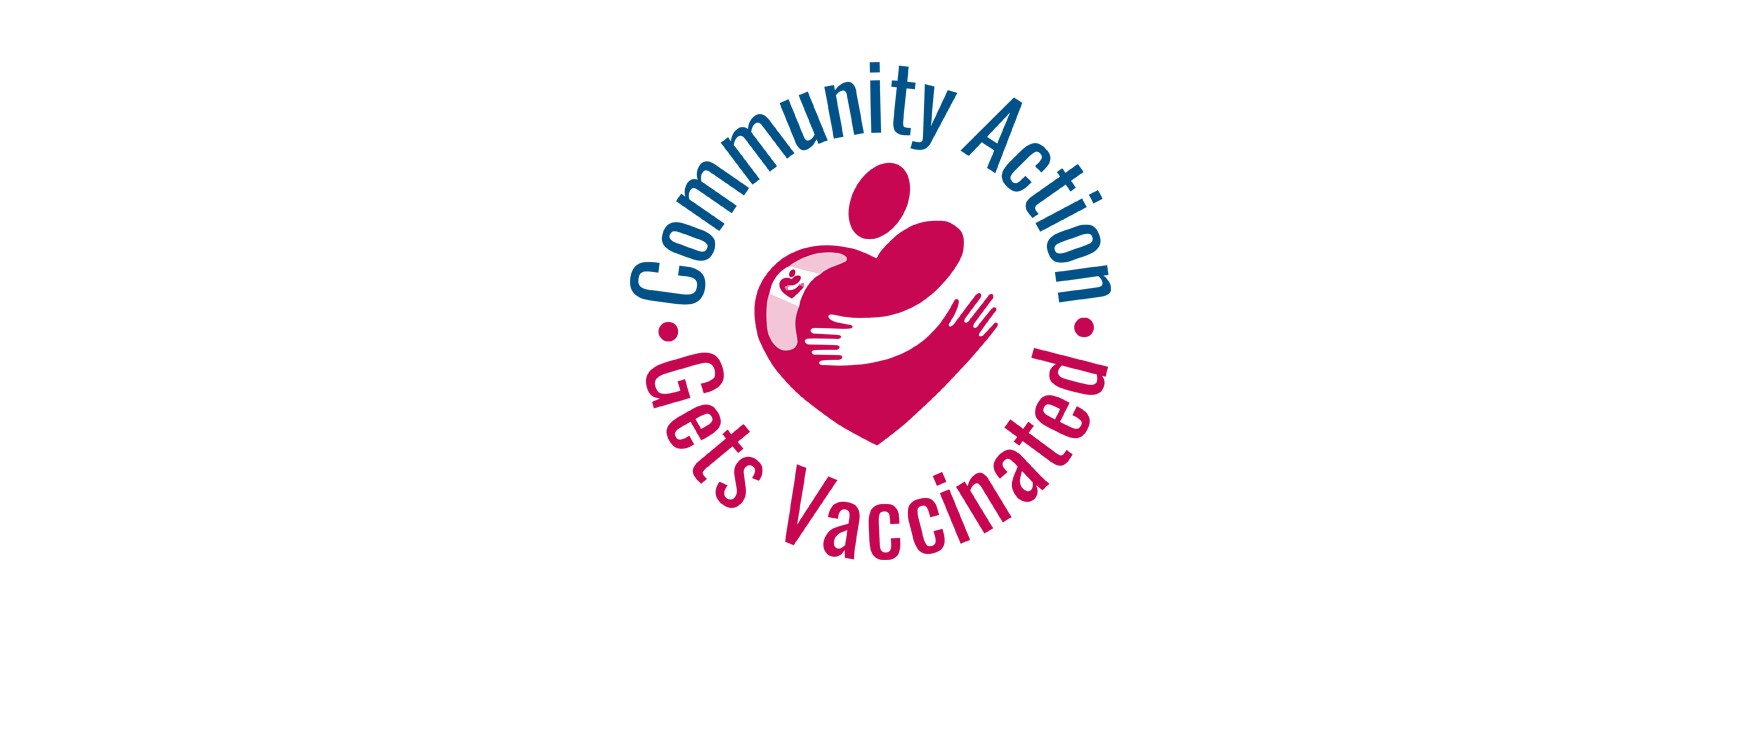 GET VACCINATED!